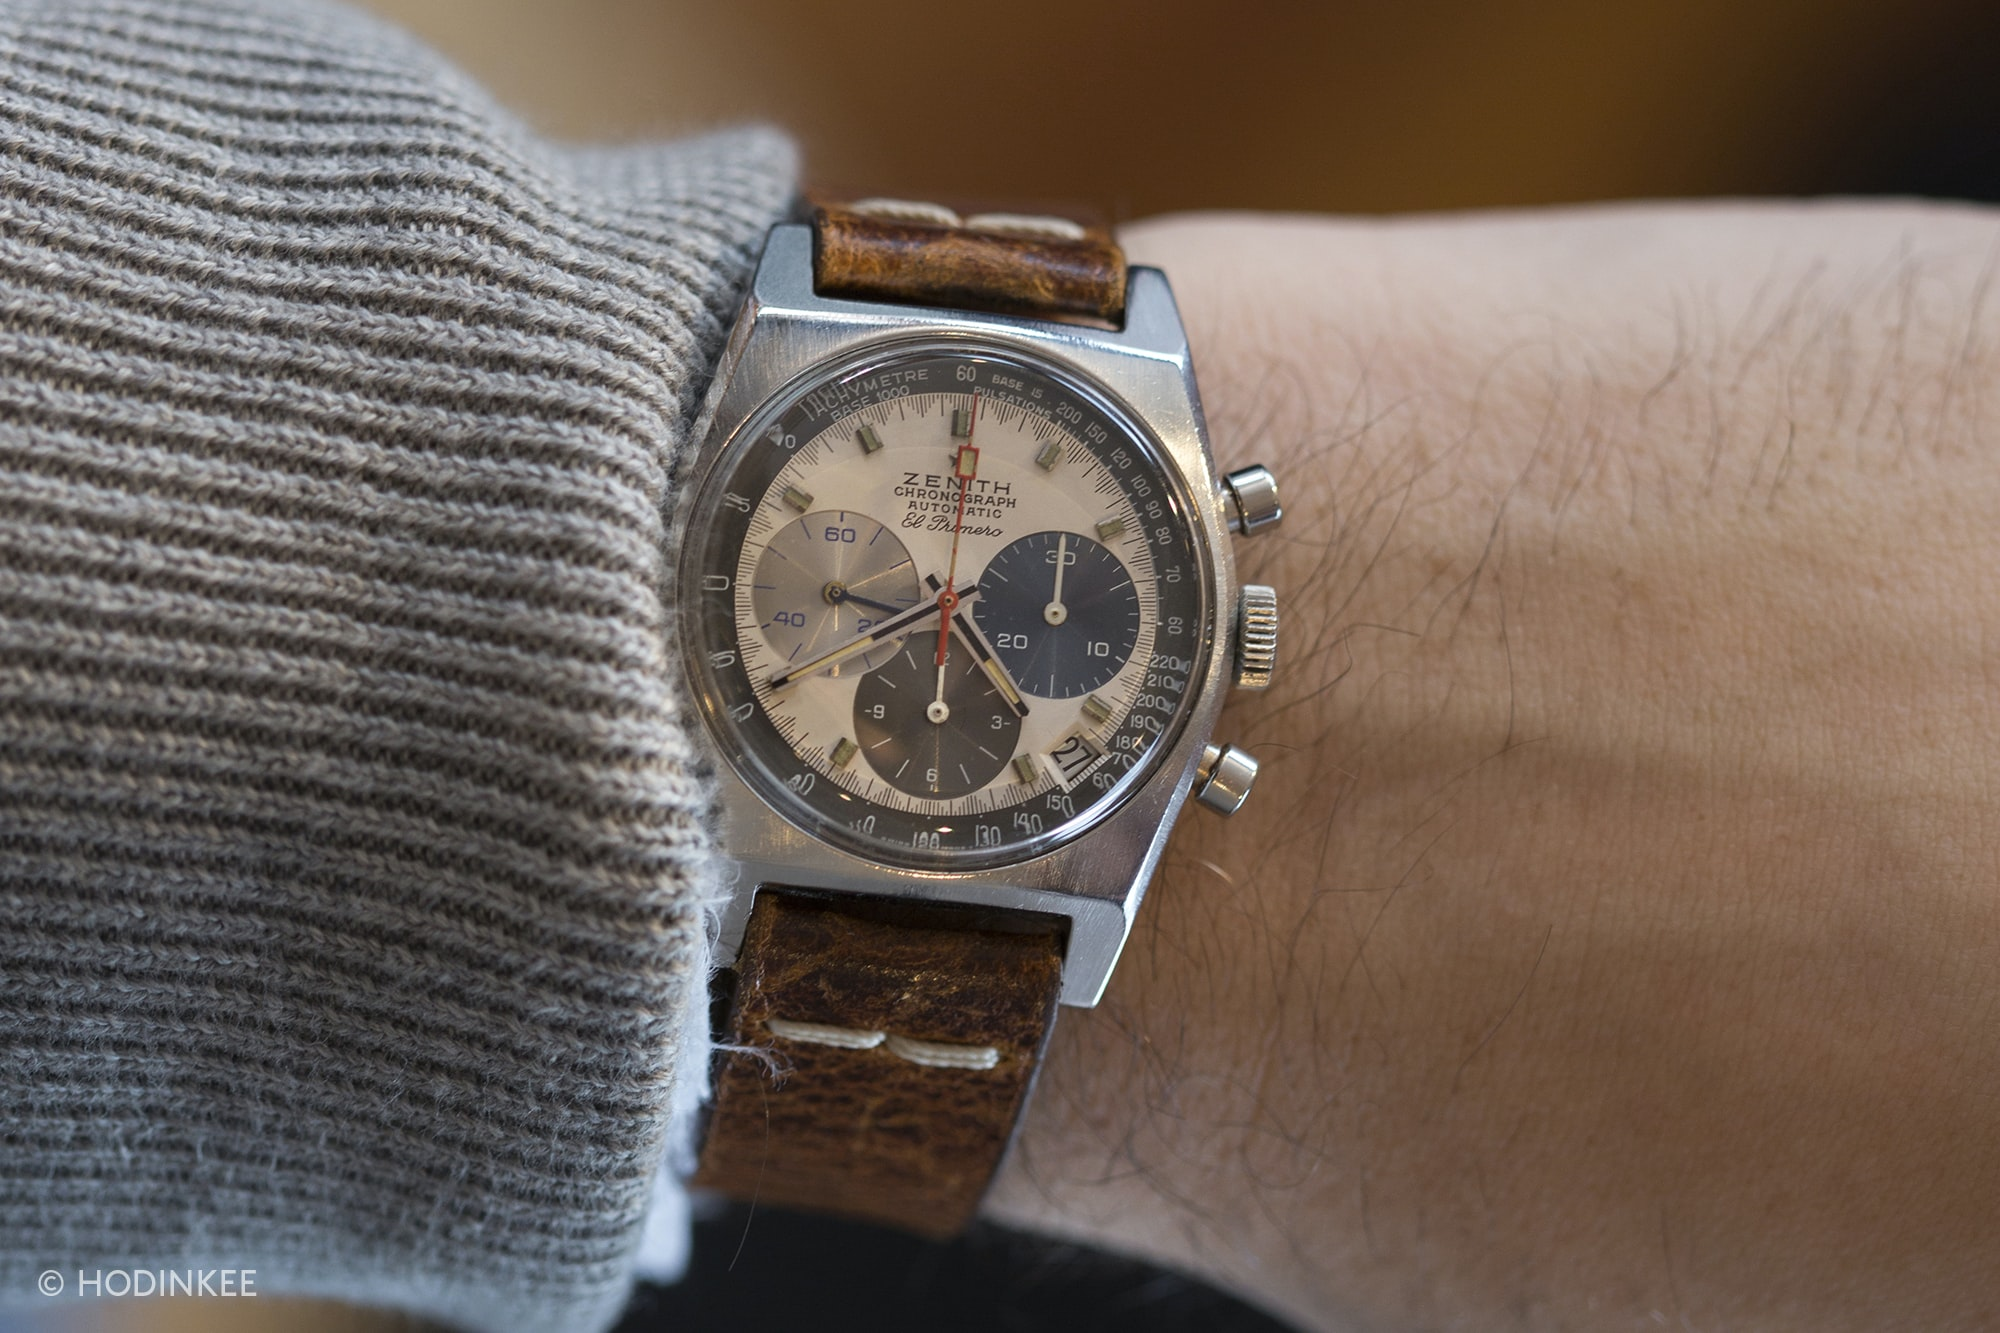 A Week On The Wrist: The Zenith El Primero Reference A3817 A Week On The Wrist: The Zenith El Primero Reference A3817 588A9681 copy